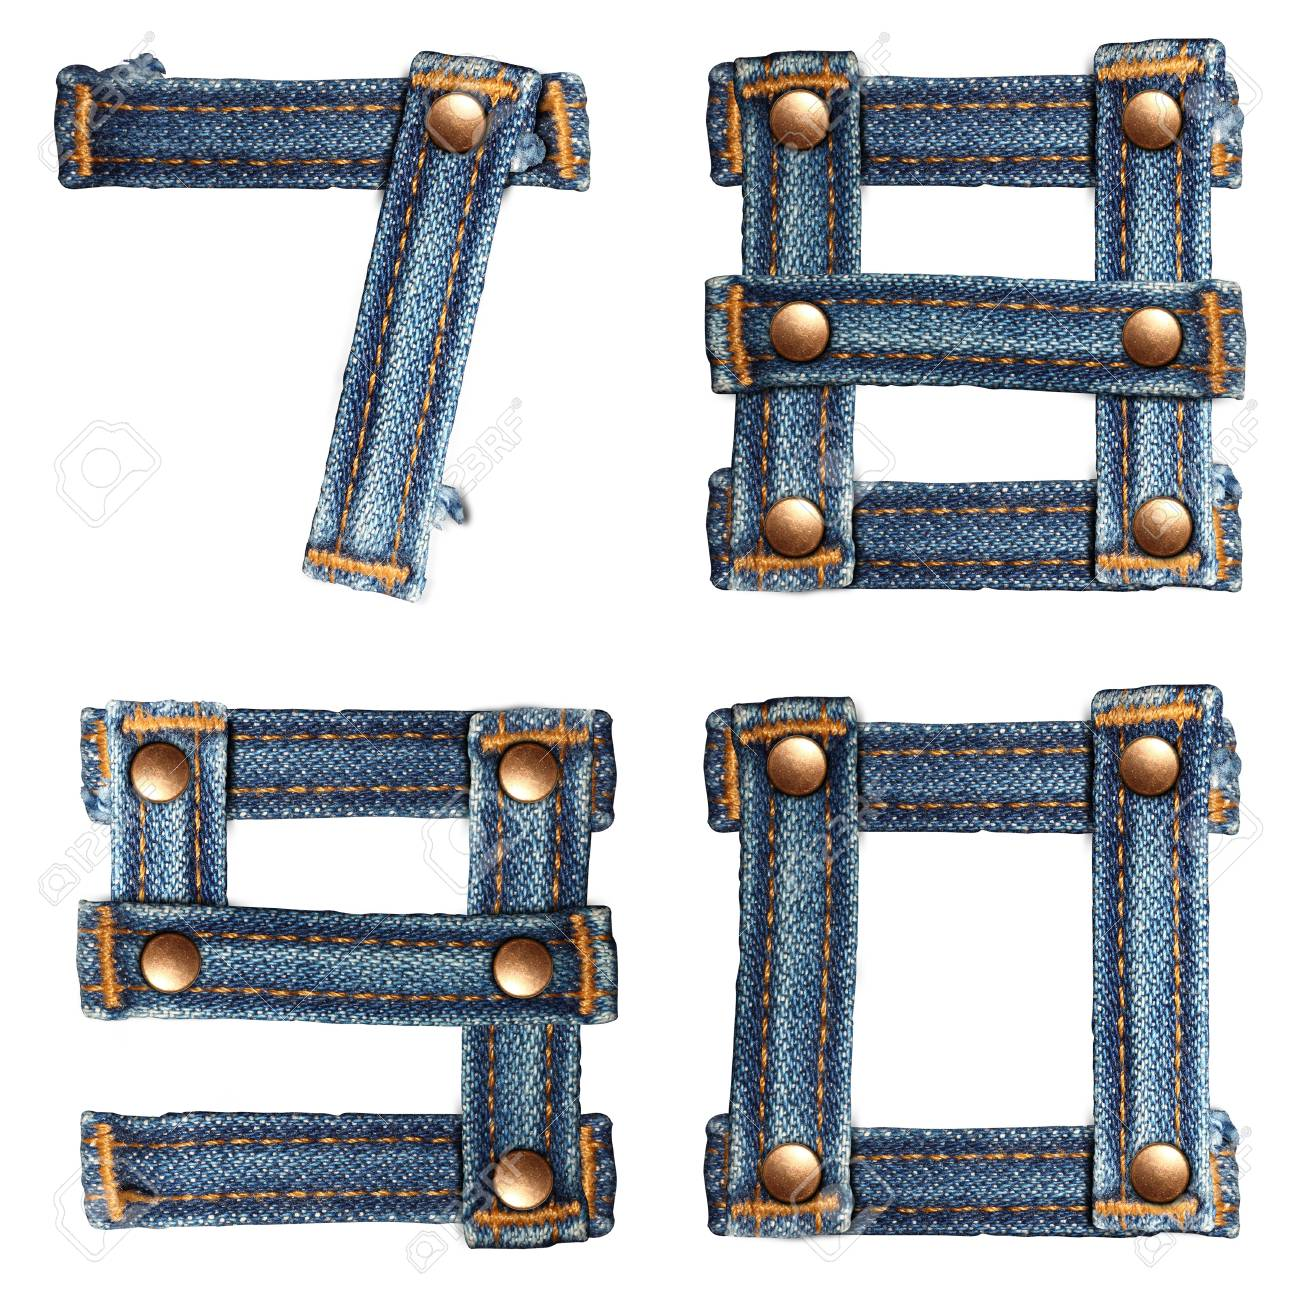 letter number of jeans alphabet on white background - 14301875